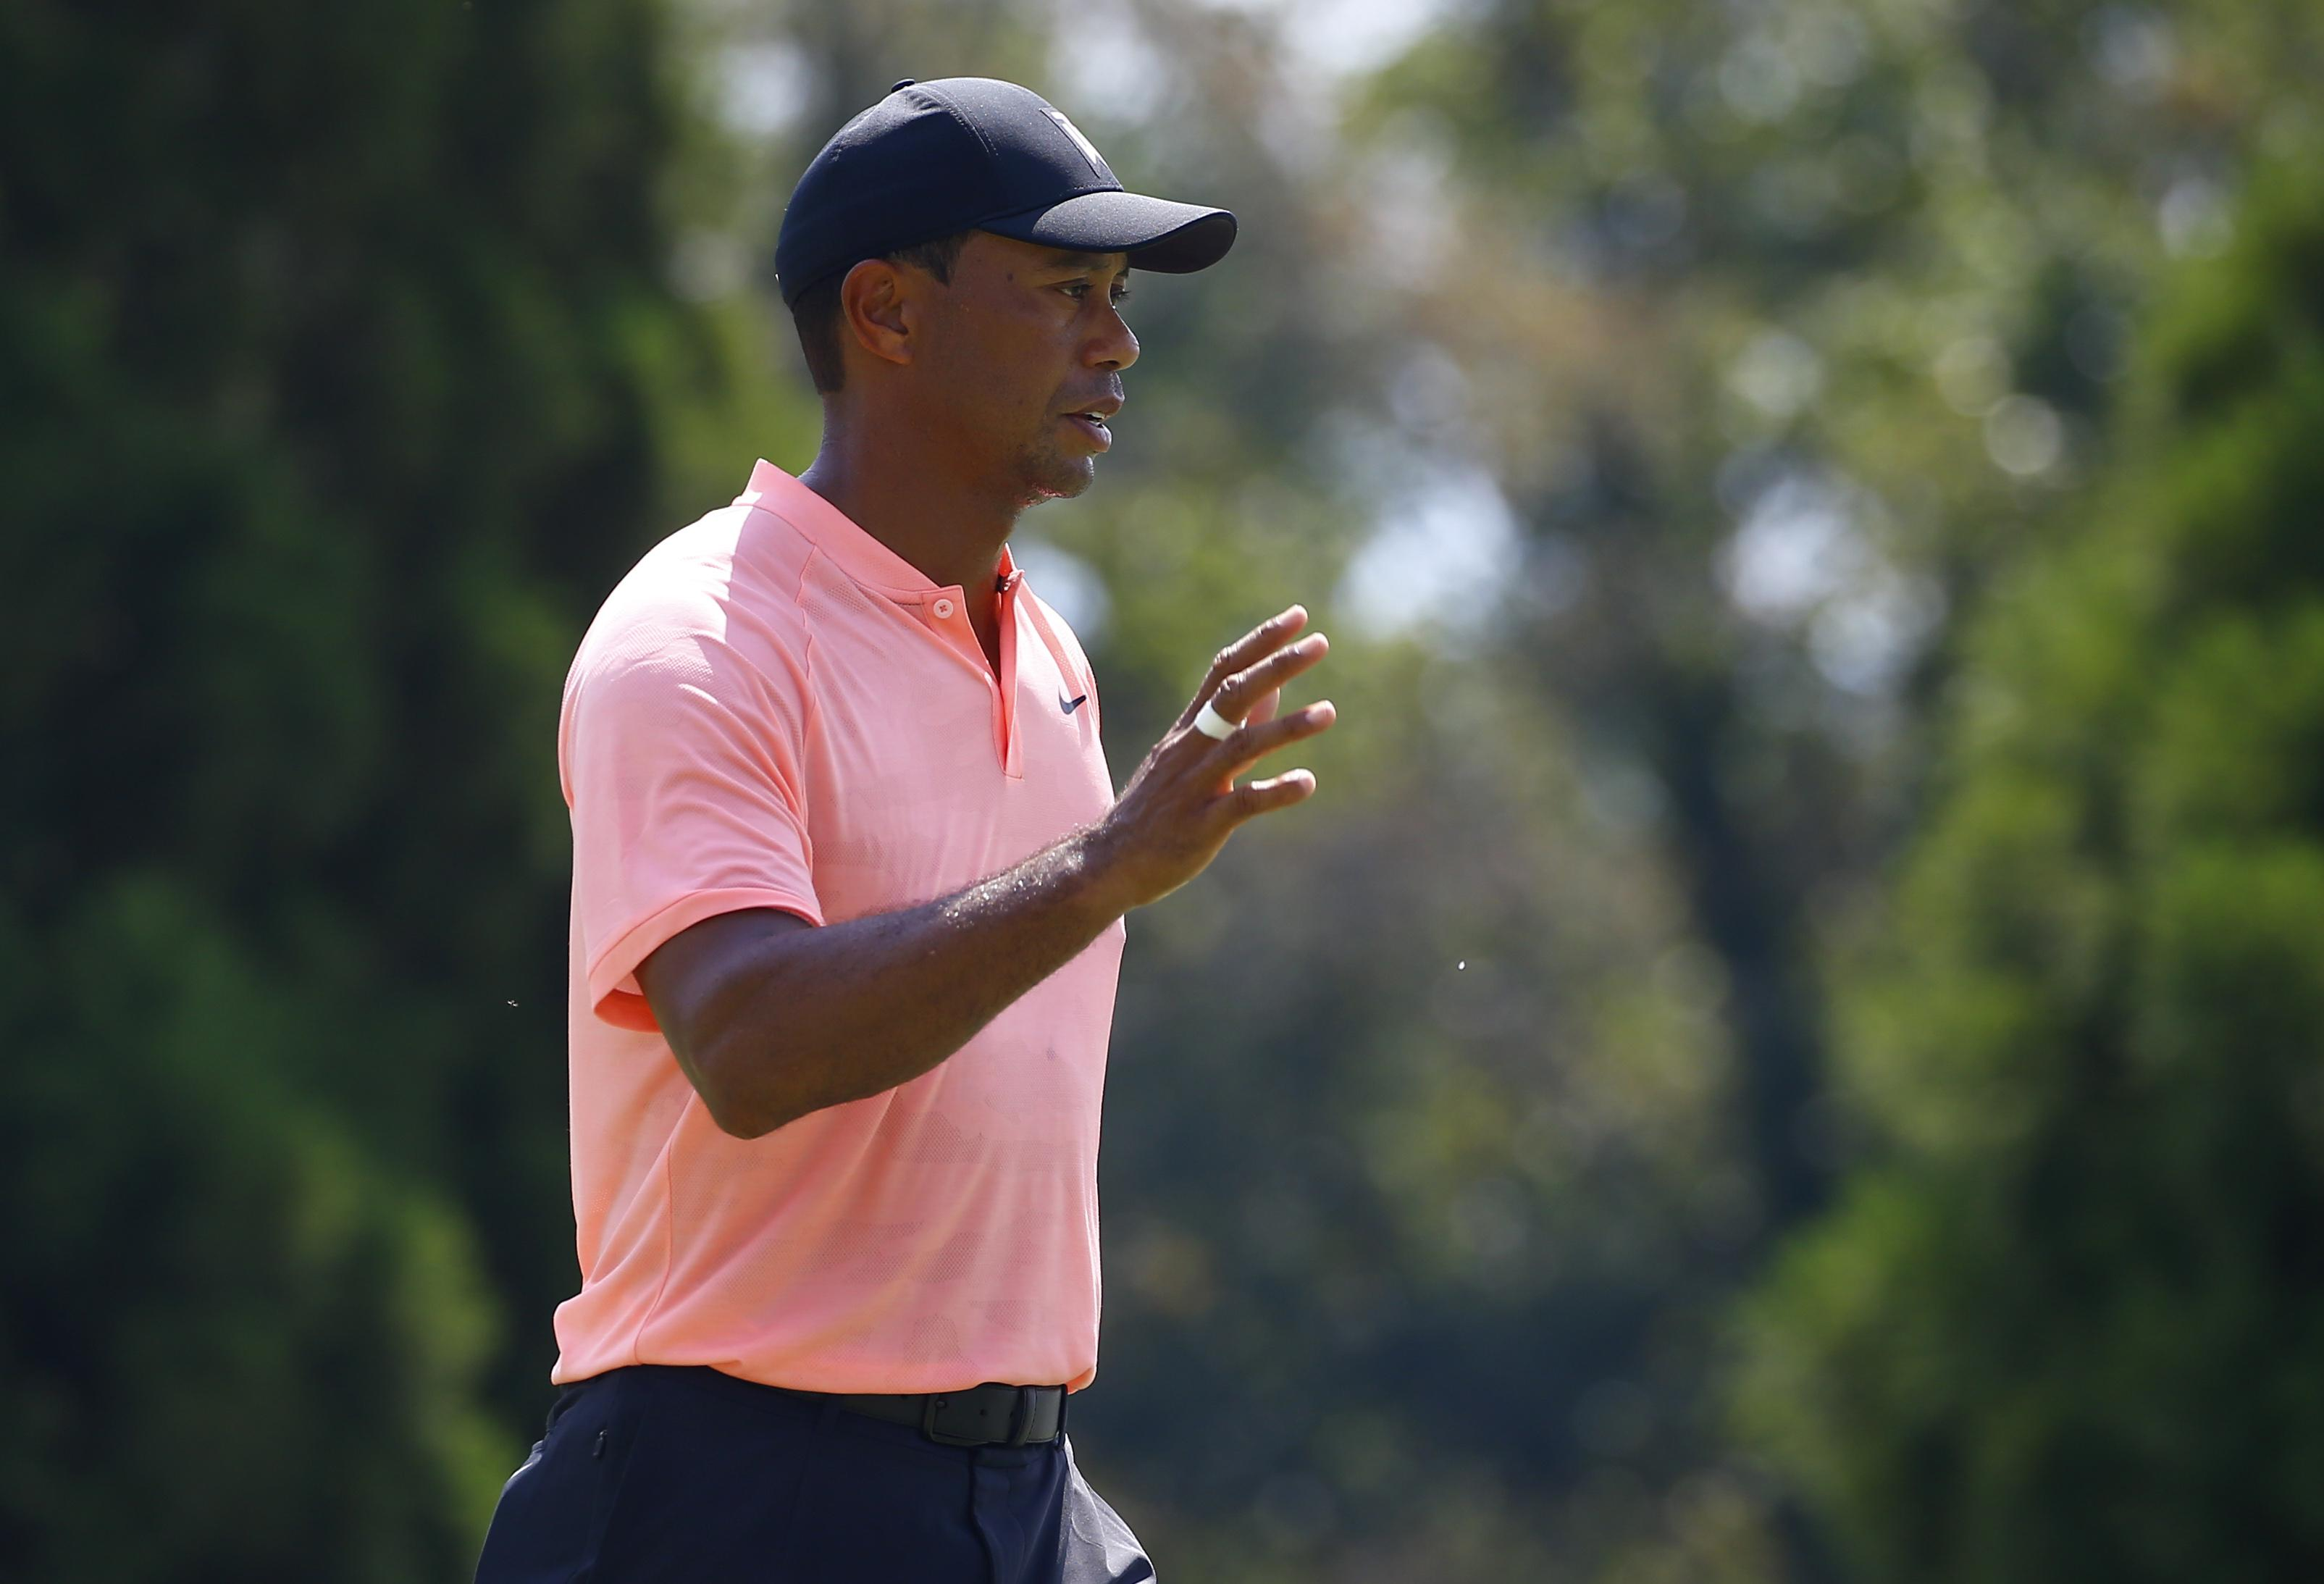 Tiger Woods looked in complete control as he shot a five under par opening round